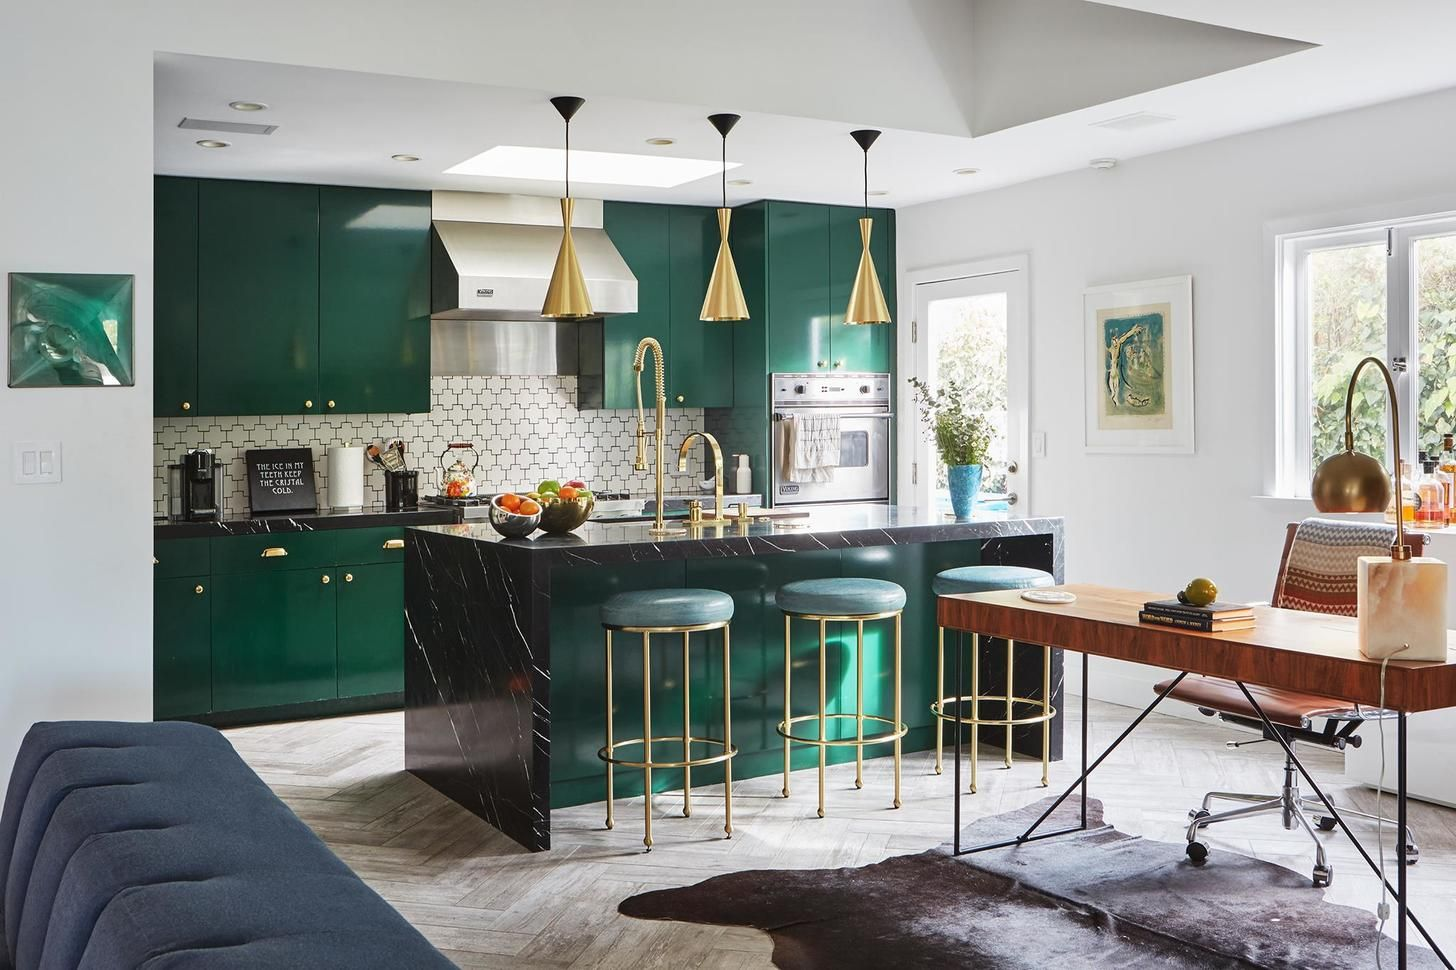 elegant los angeles kitchen 2048x1365 green kitchen cabinets green kitchen decor green kitchen on kitchen ideas emerald green id=45242